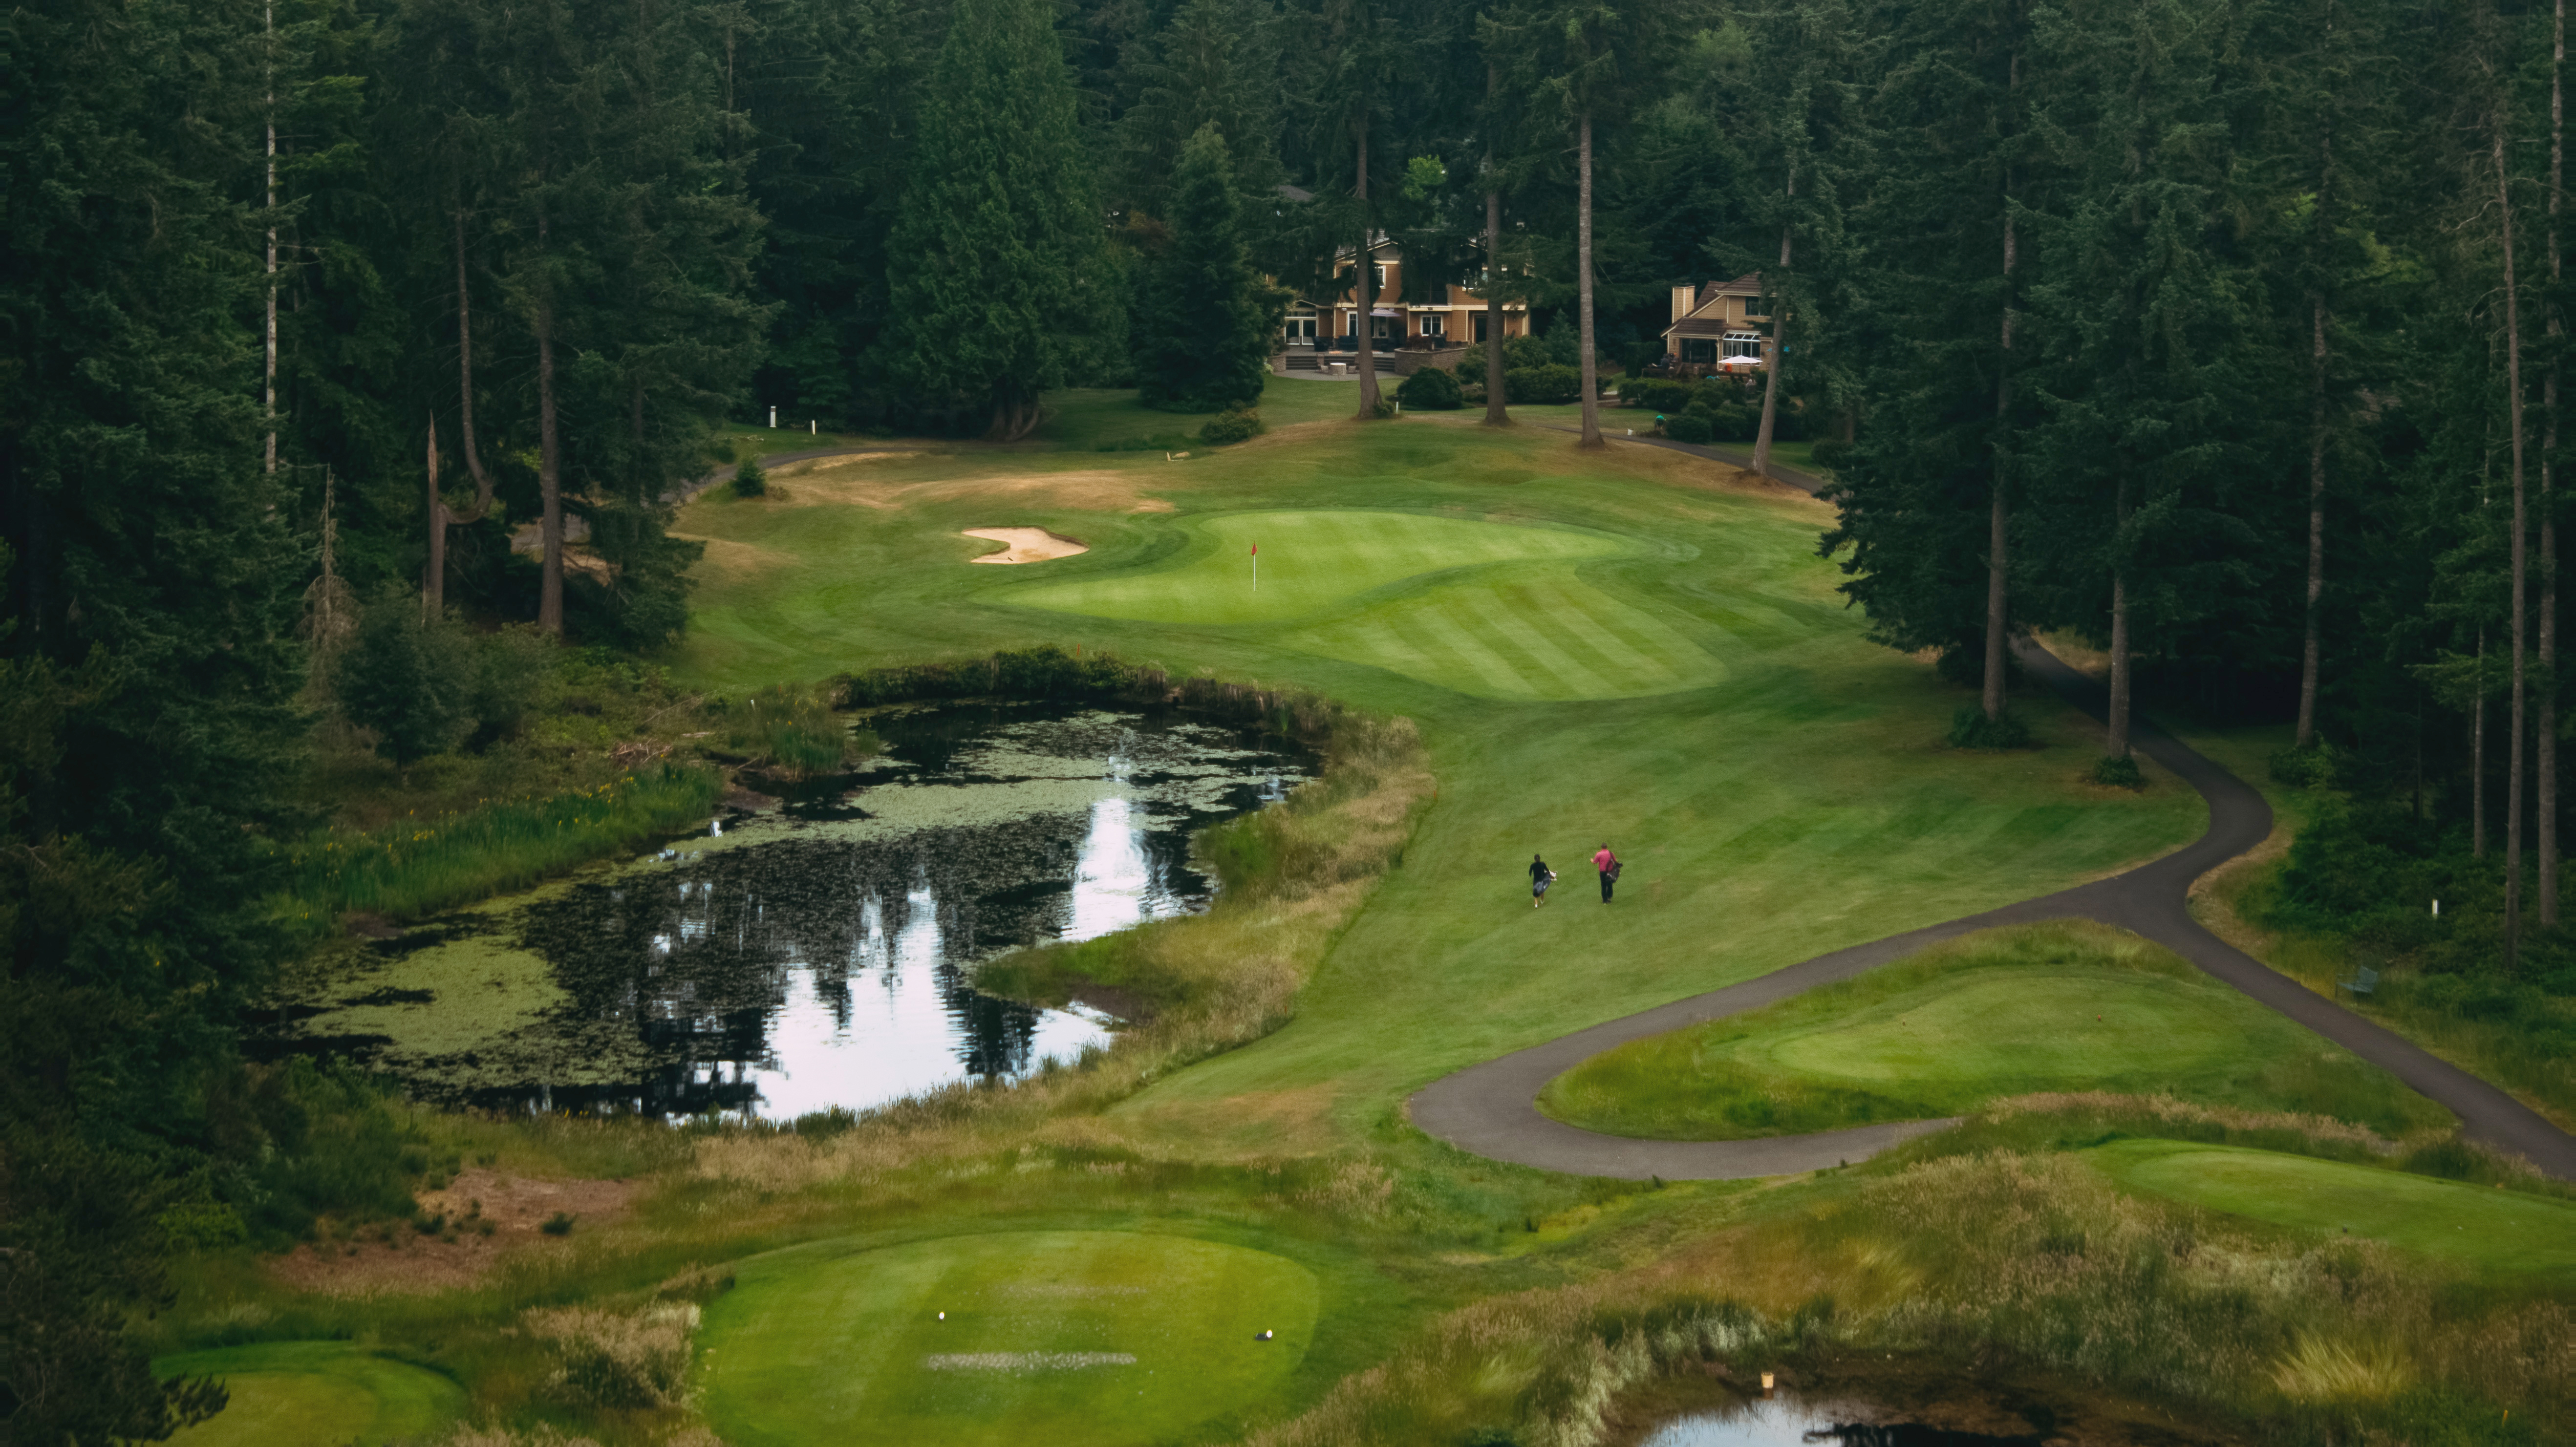 Mccormick Woods Golf Club Specials Port Orchard Golf Course Special Offers